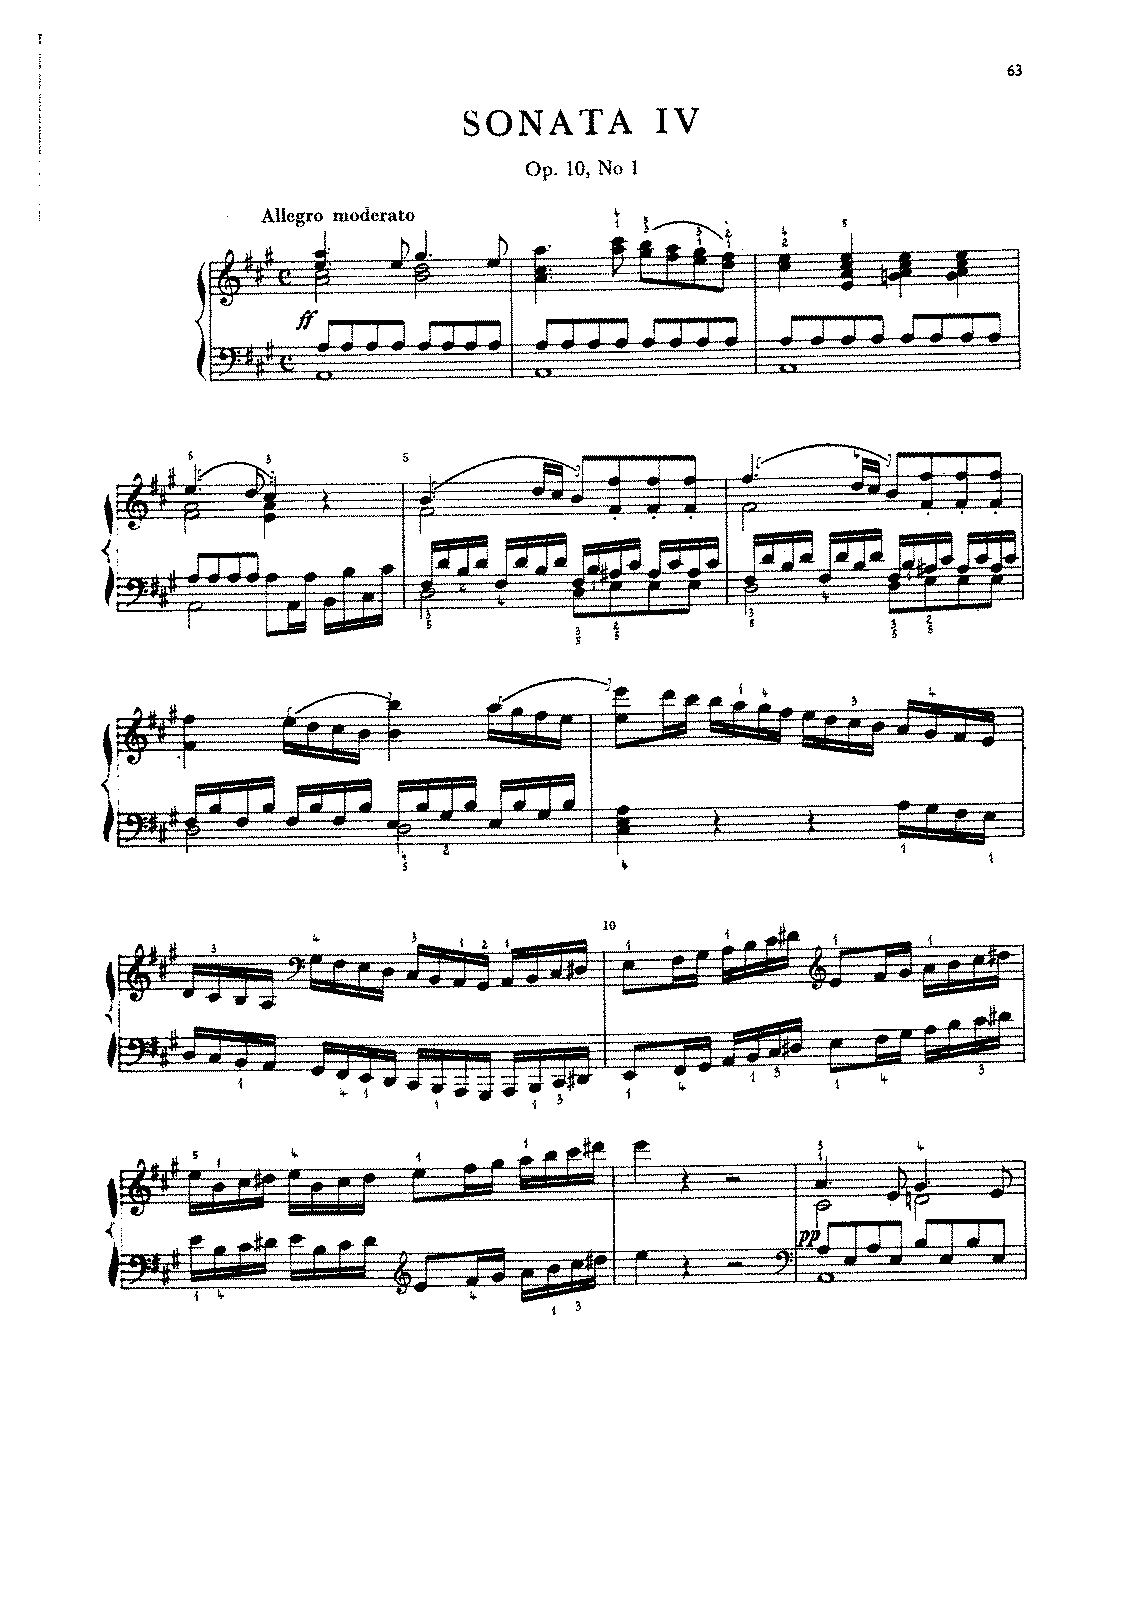 Dussek - Op.10 - 3 Piano Sonatas - No.1 in A.pdf